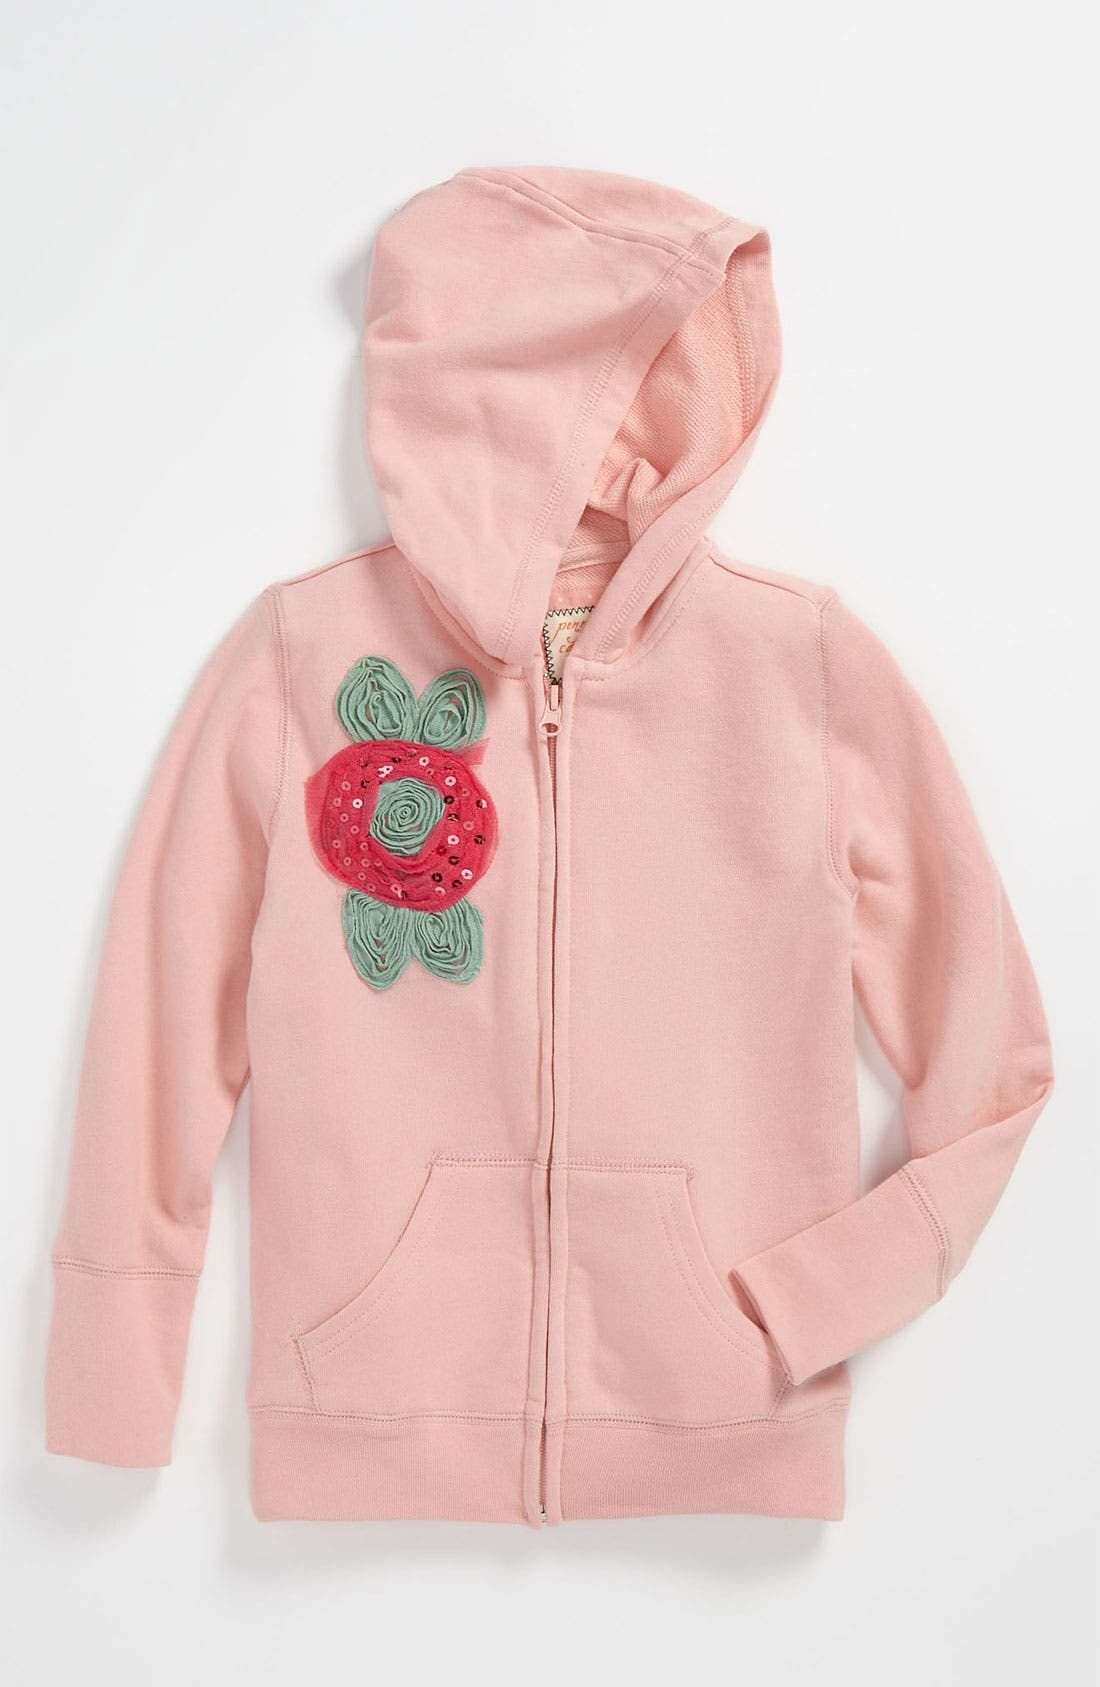 Alternate Image 1 Selected - Penny Candy 'Happy' Hoodie (Little Girls & Big Girls)